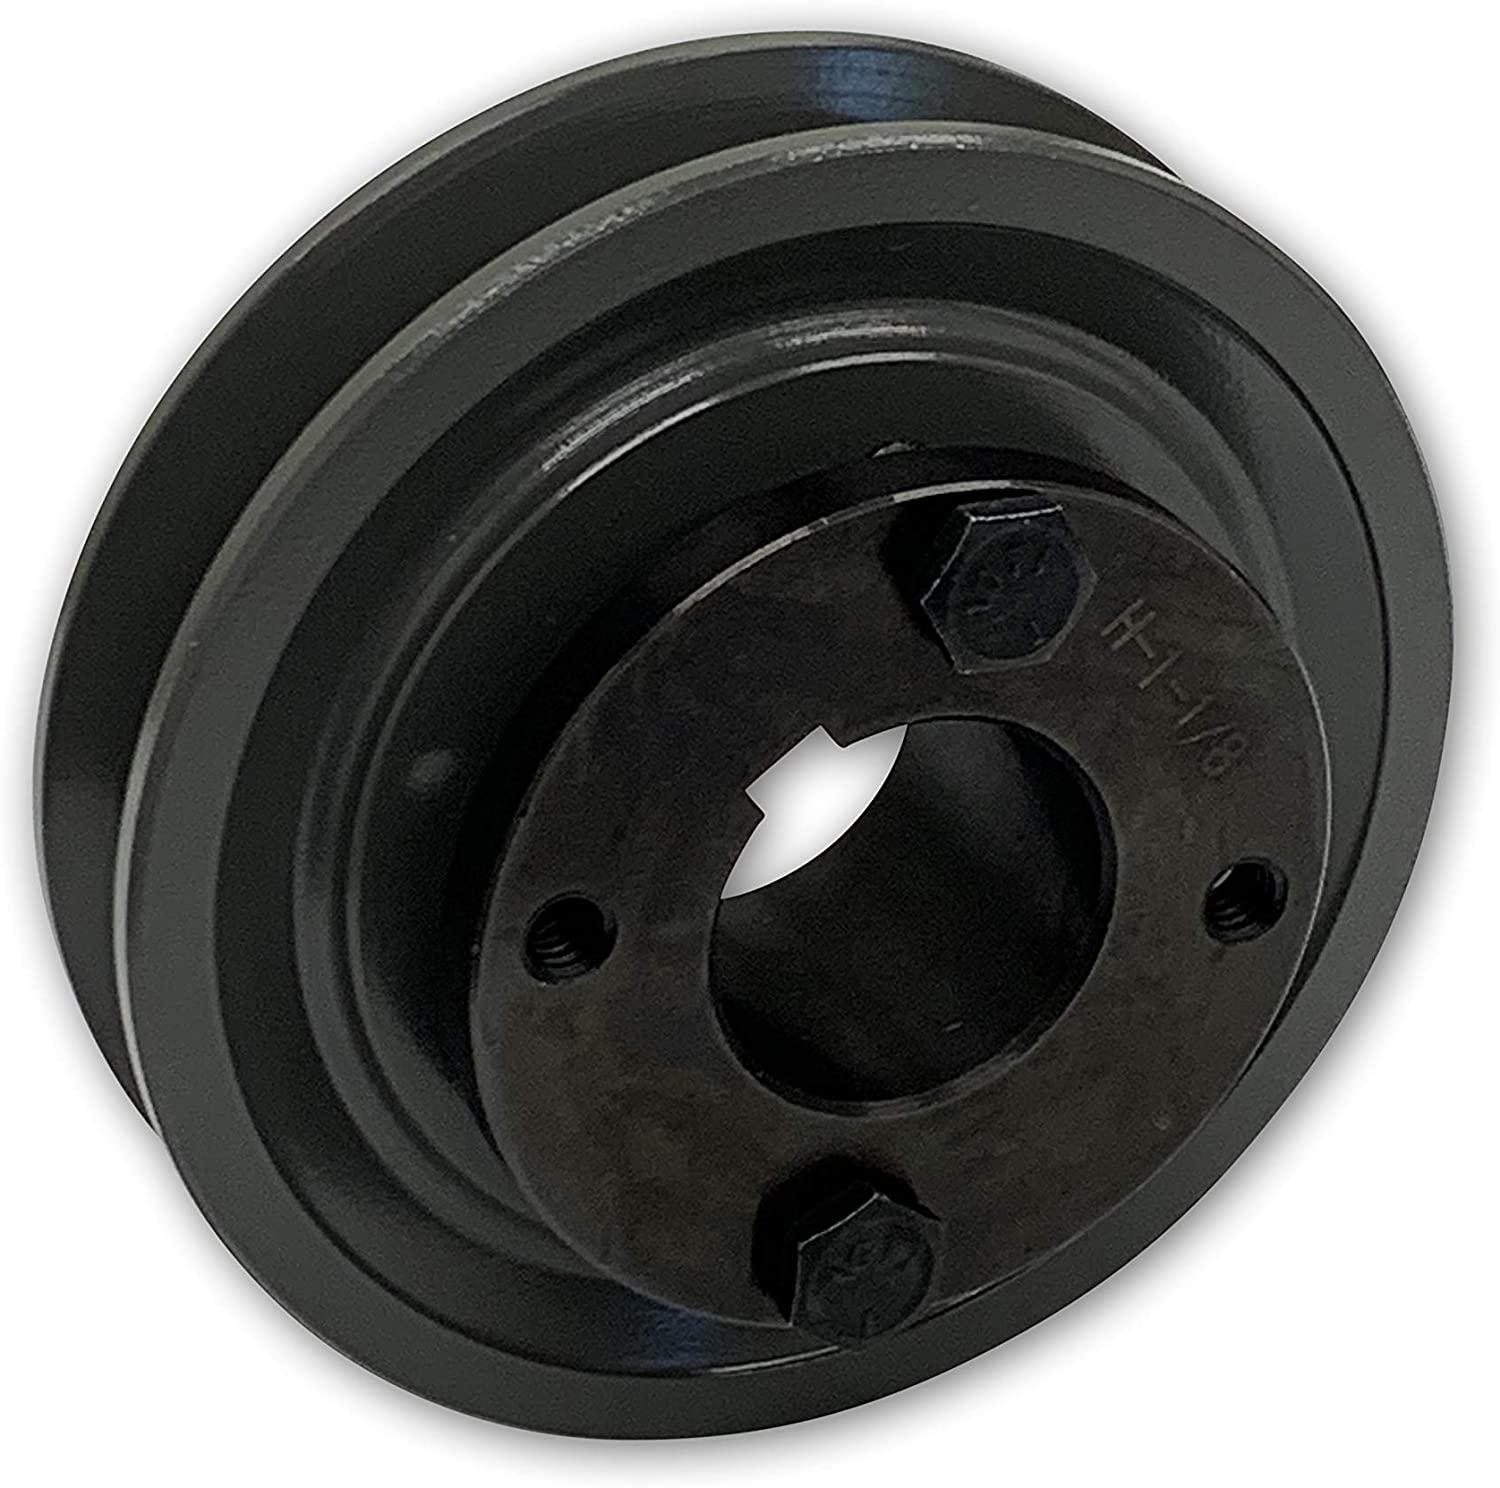 BUSHING INCLUDED 1 Groove Pulley Single Groove 3.15 Cast Iron Electric Motor H Pulley//Sheave For 5//8 Top Width B // 5L // BK // 5LK Section V Belt 0.75 Bore 3//4 Shaft